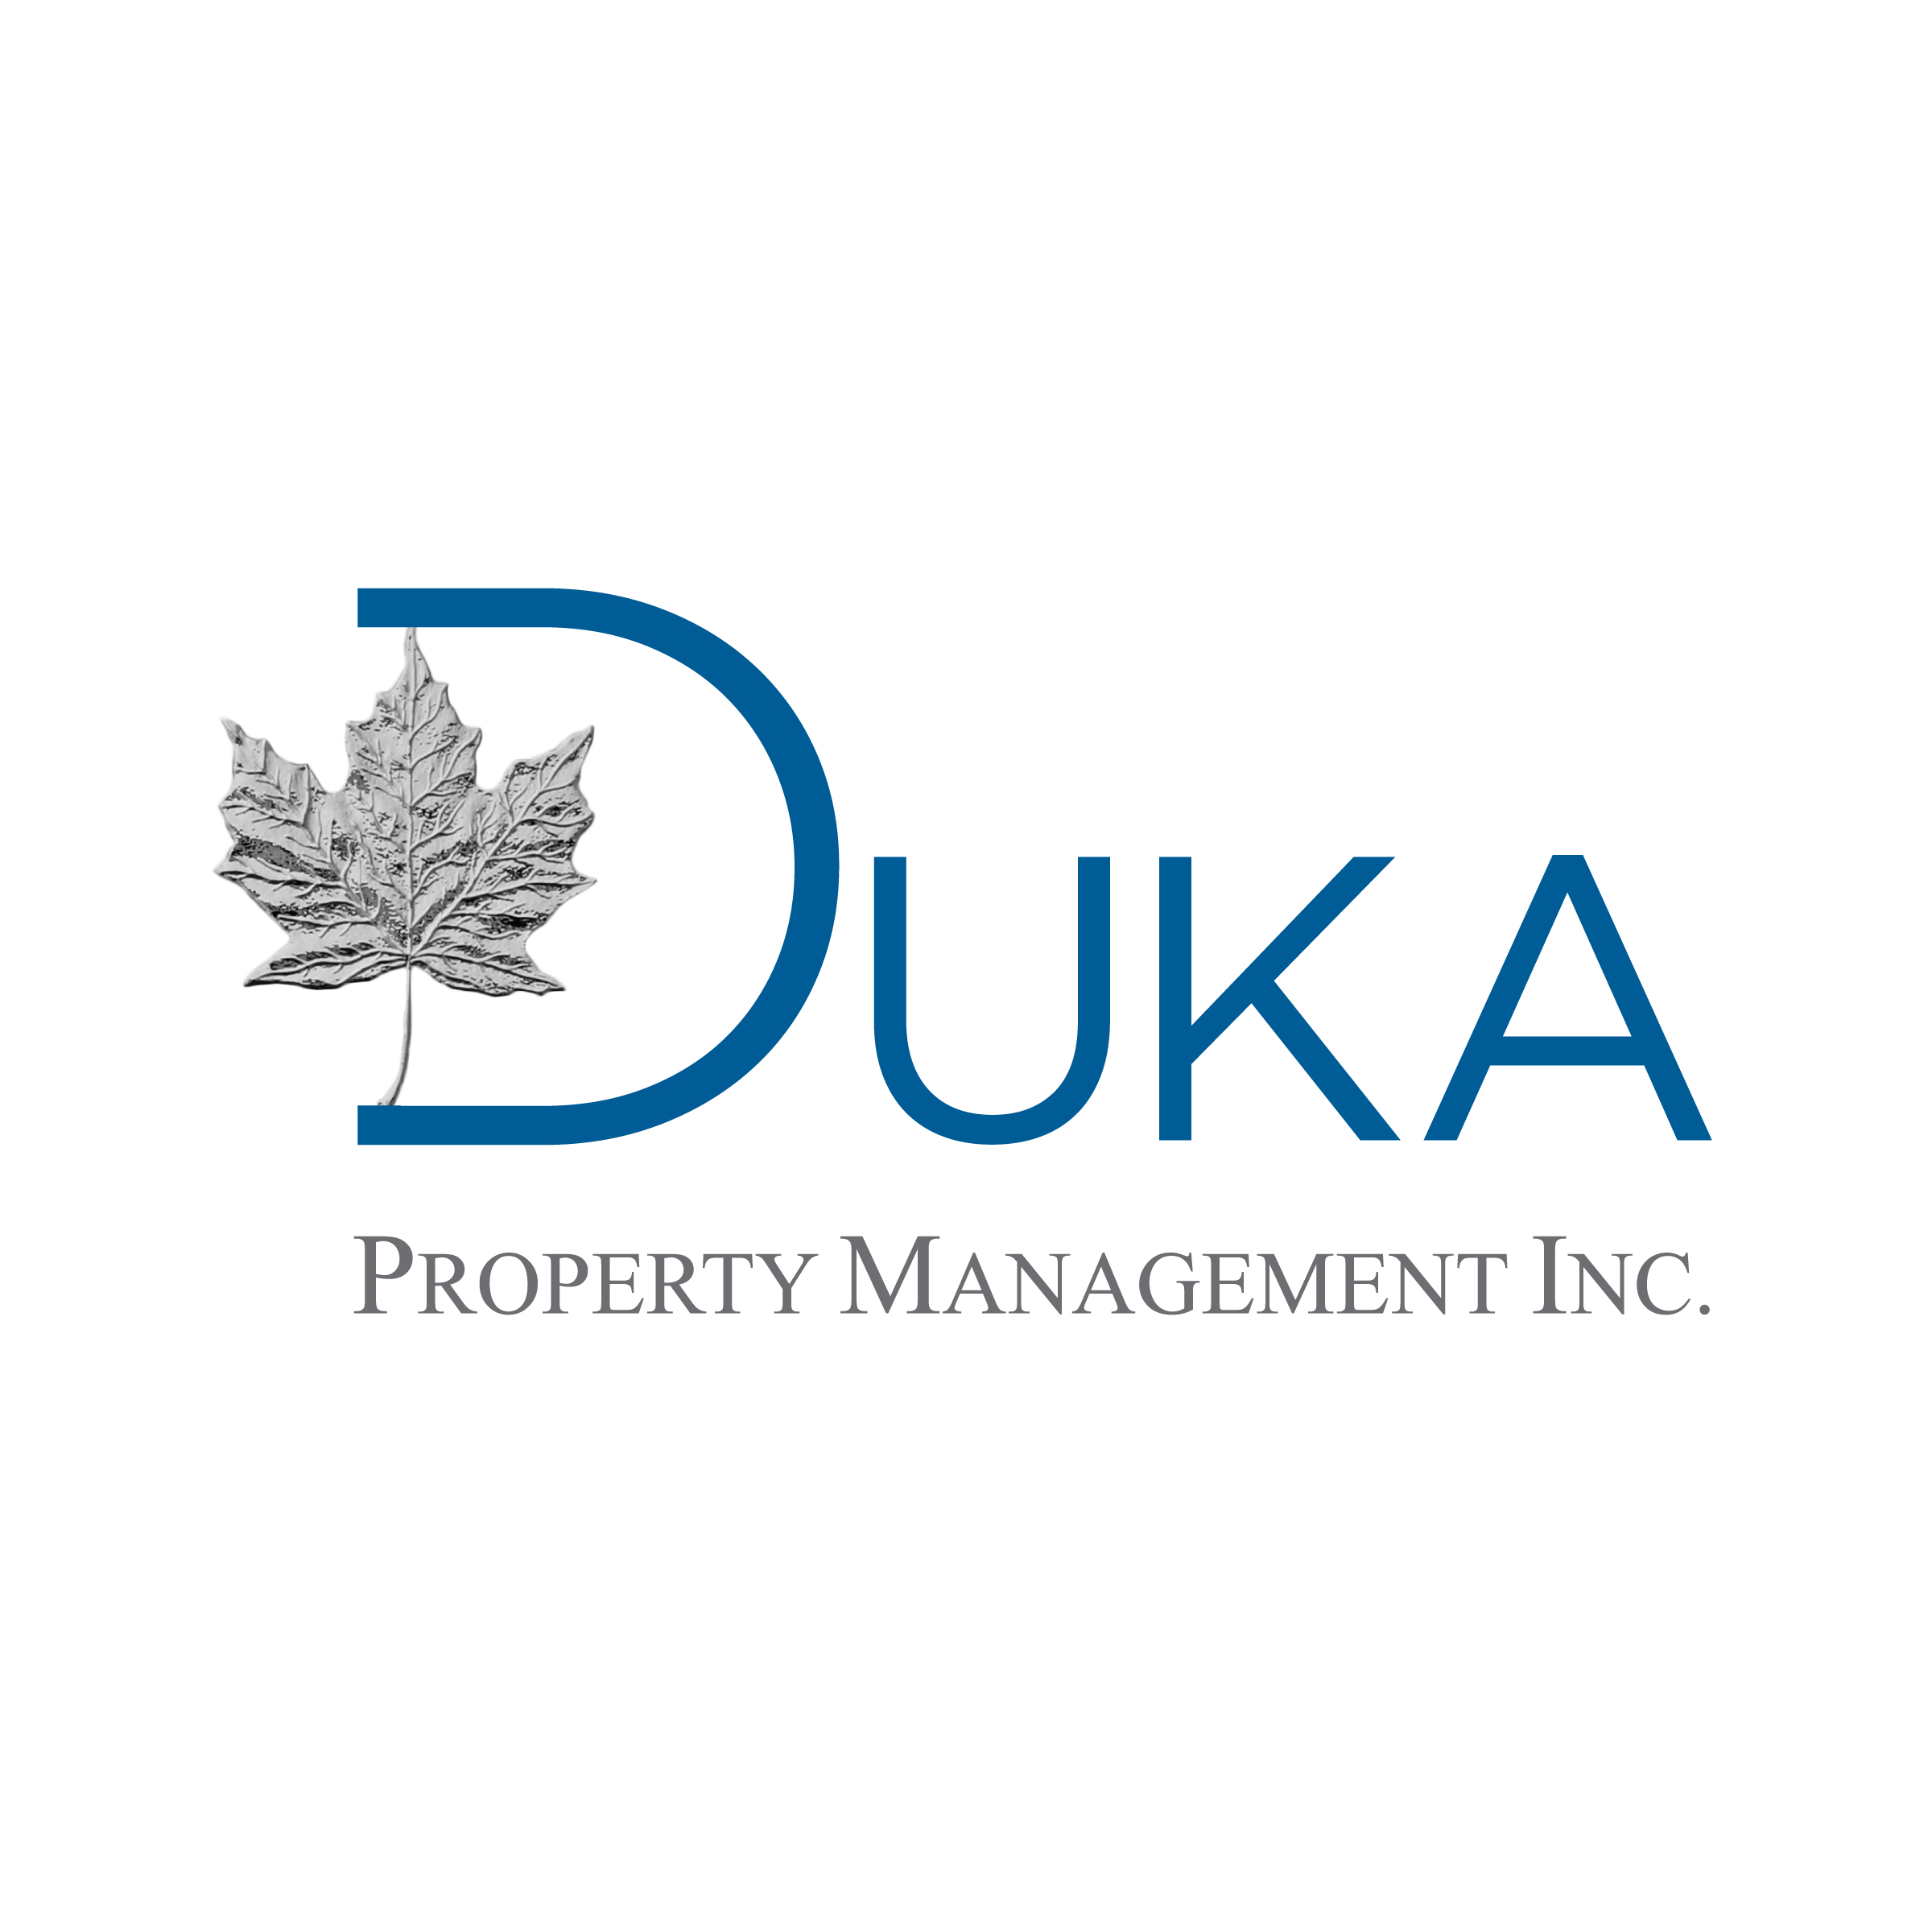 Duka Property Management logo